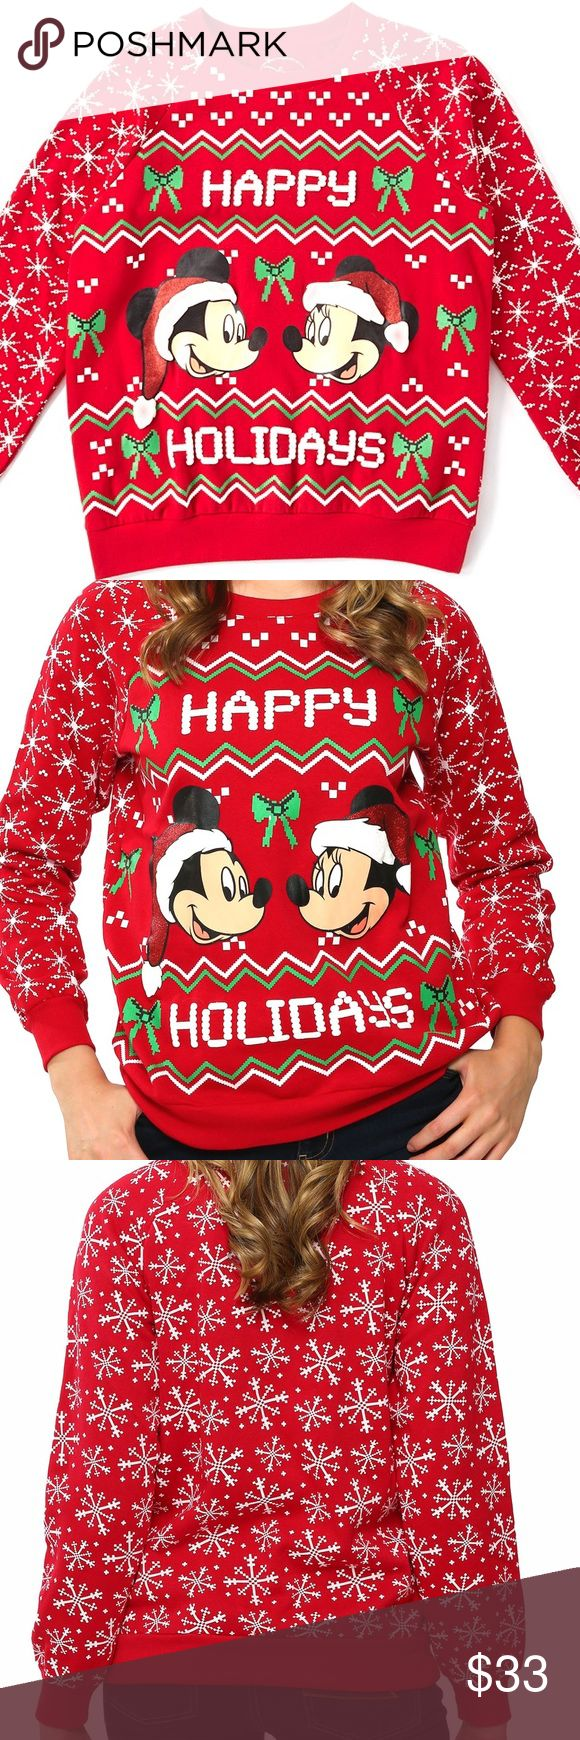 "Official Mickey Mouse Christmas Sweater holiday Mickey Mouse Christmas Sweater Holiday Sizes S M L XL SELLING VERY FAST! MY LAST 40 sold out! New batch of Sweaters just in! Just a few! These ones will sell out fast too so get your size now! I can't hold these. Make an offer but not too low because these will sell for full price.    NEW IN PACKAGE FROM BOUTIQUE   Win the ""Ugly Christmas Sweater"" Contest this year in this super cute Christmas Sweater  Mickey Mouse Authentic Disney Sweatshirt…"